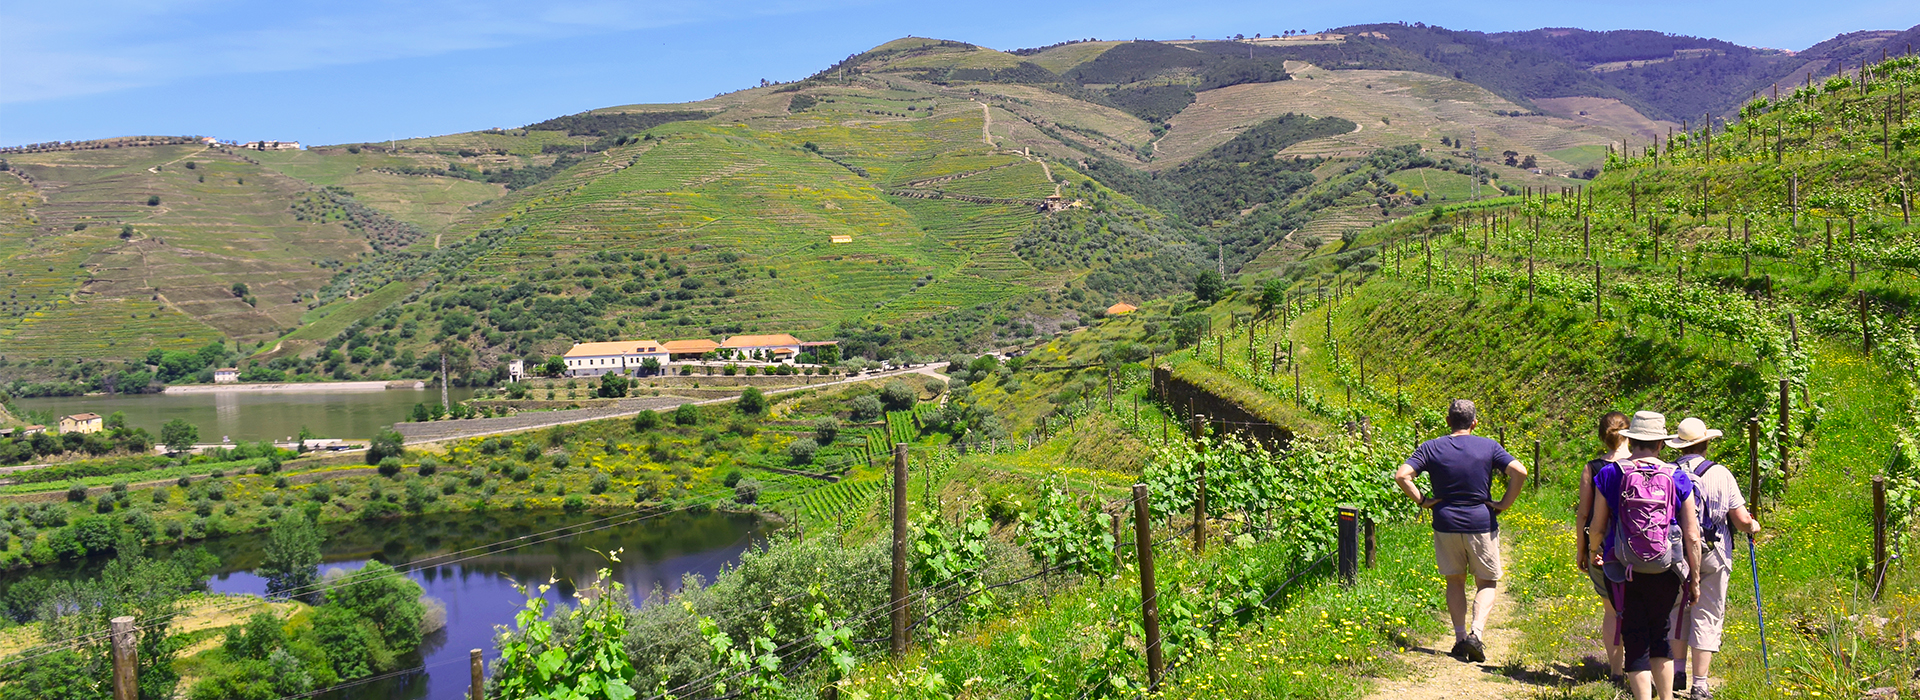 The people of the Douro